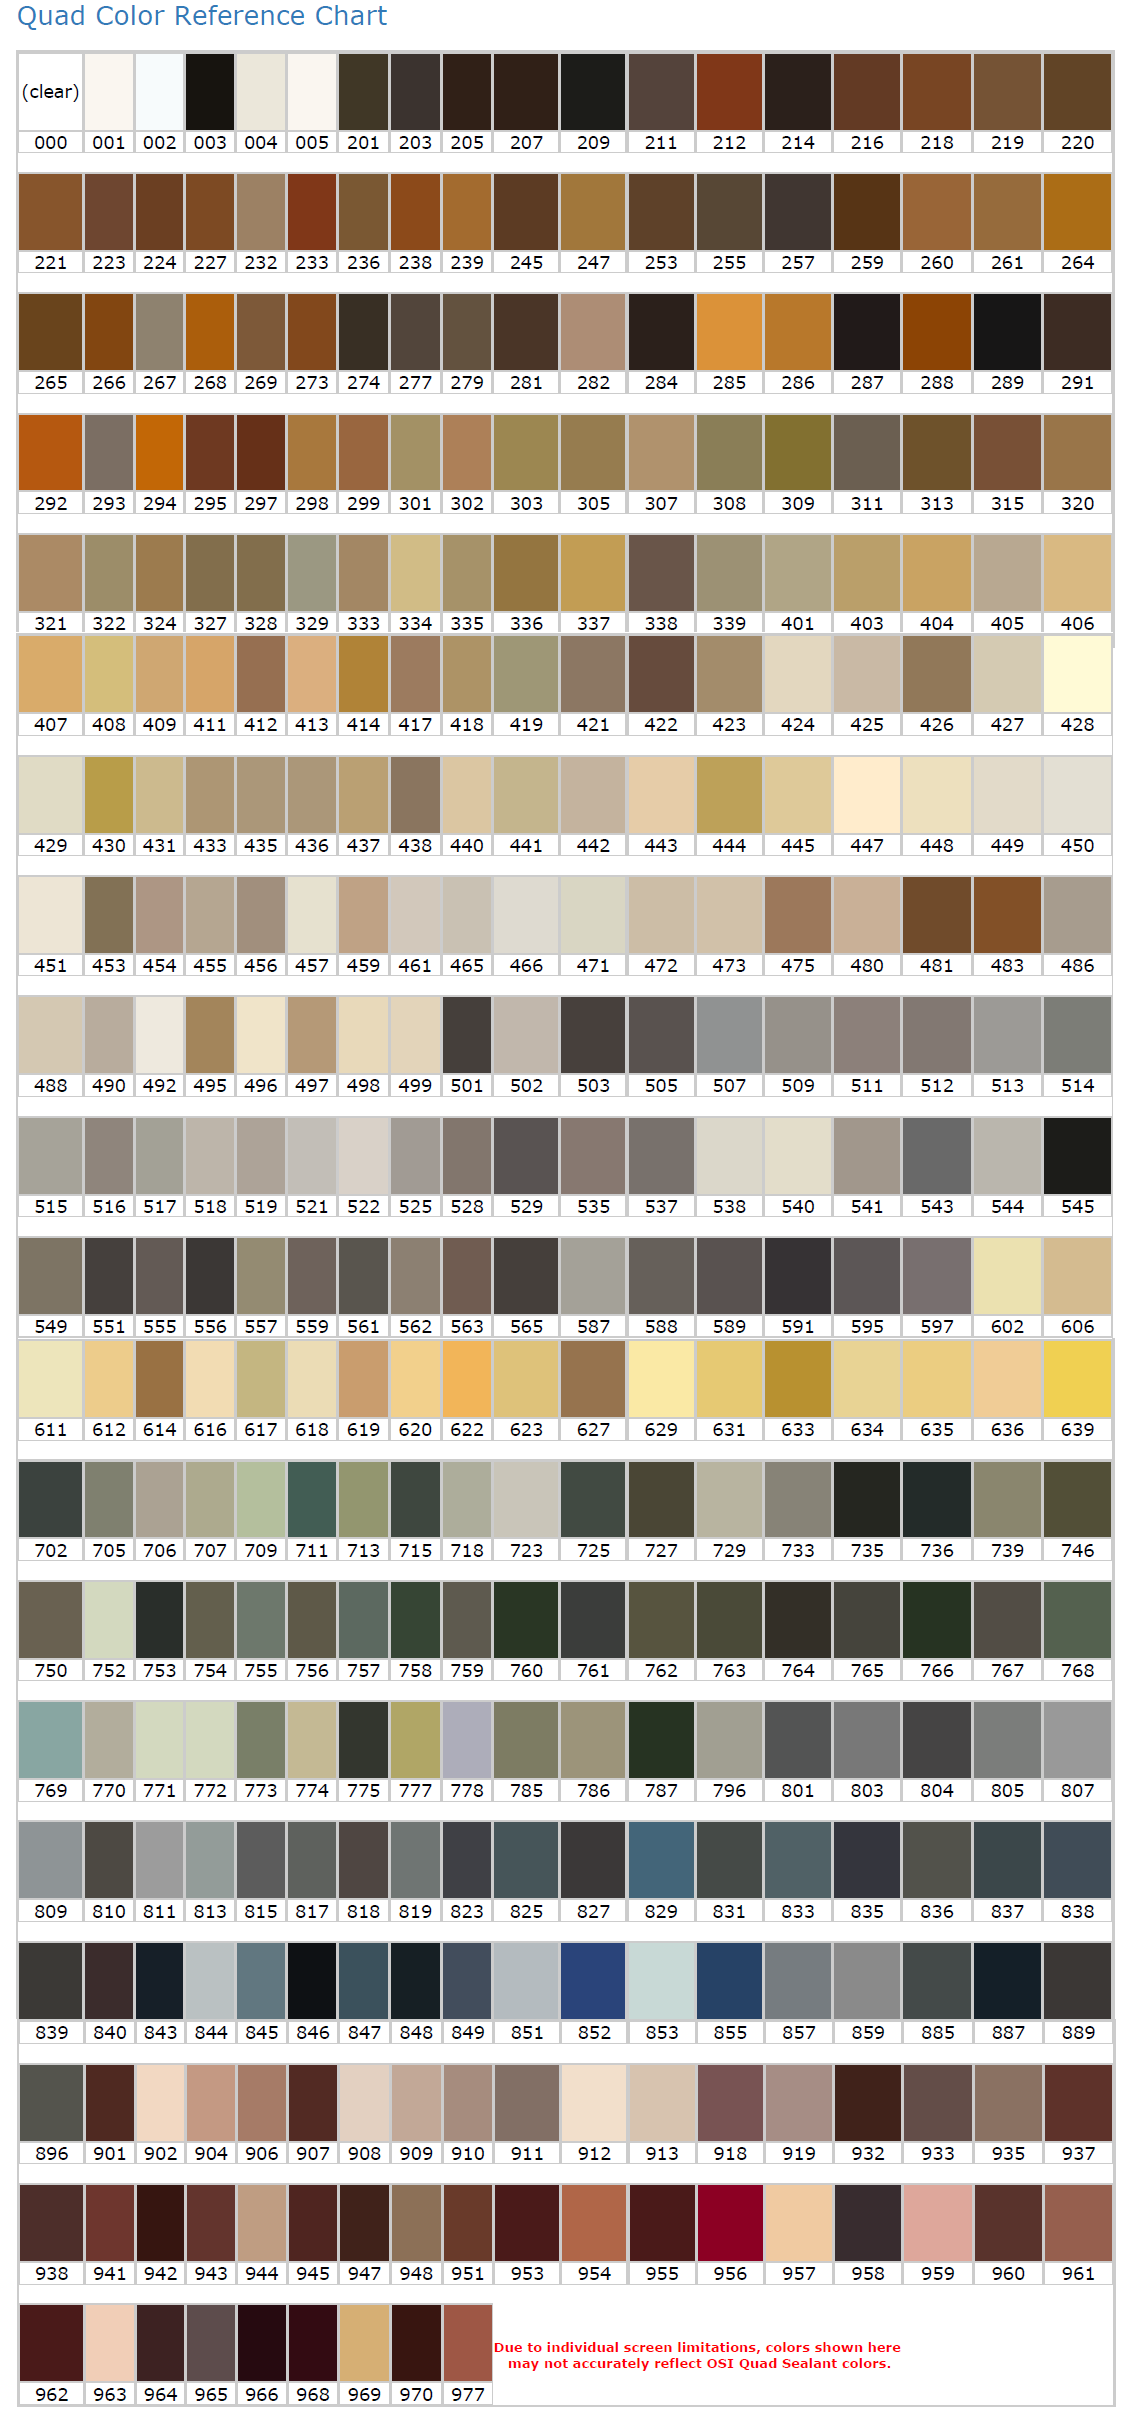 quad-color-chart1.png